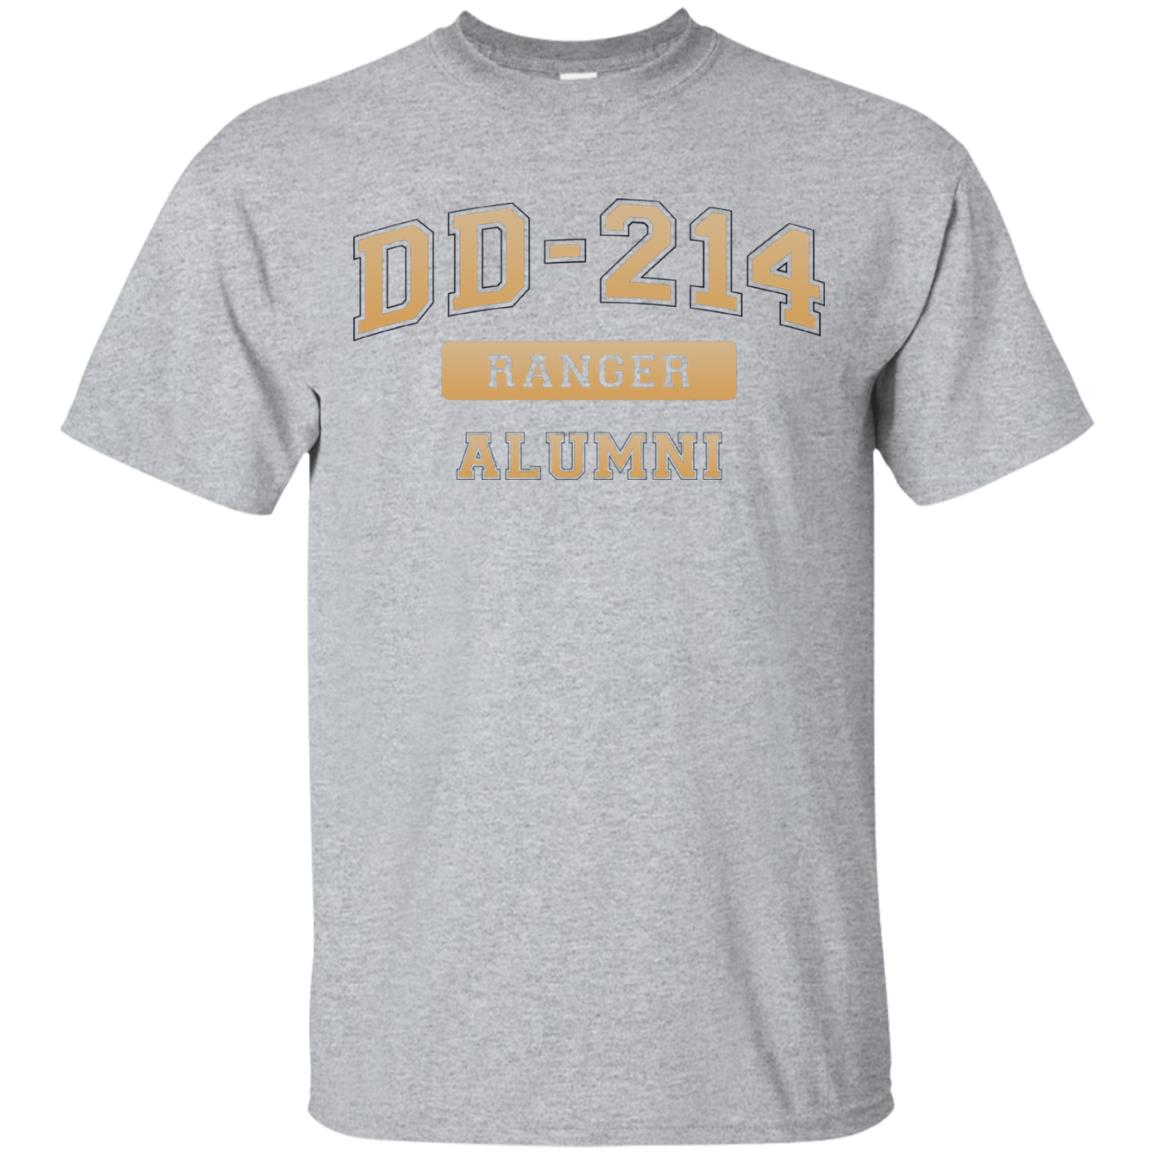 Awesome Dd 214 Us Army Ranger Tan Alumni T Shirt 99promocode